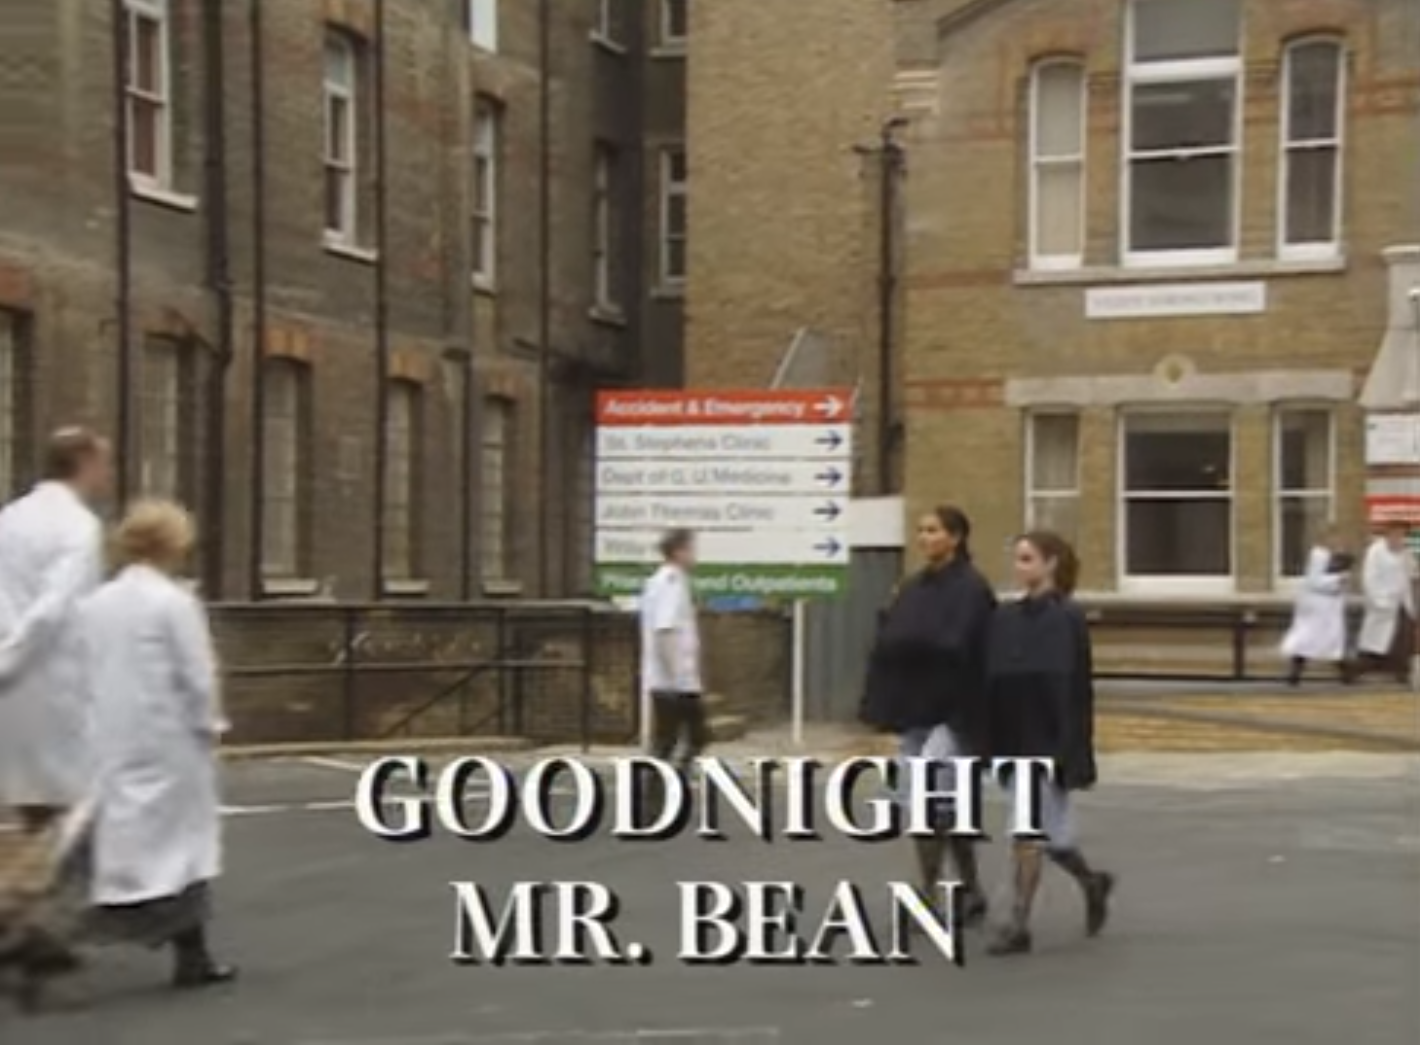 Goodnight mr bean mr bean wiki fandom powered by wikia goodnight mr bean solutioingenieria Image collections